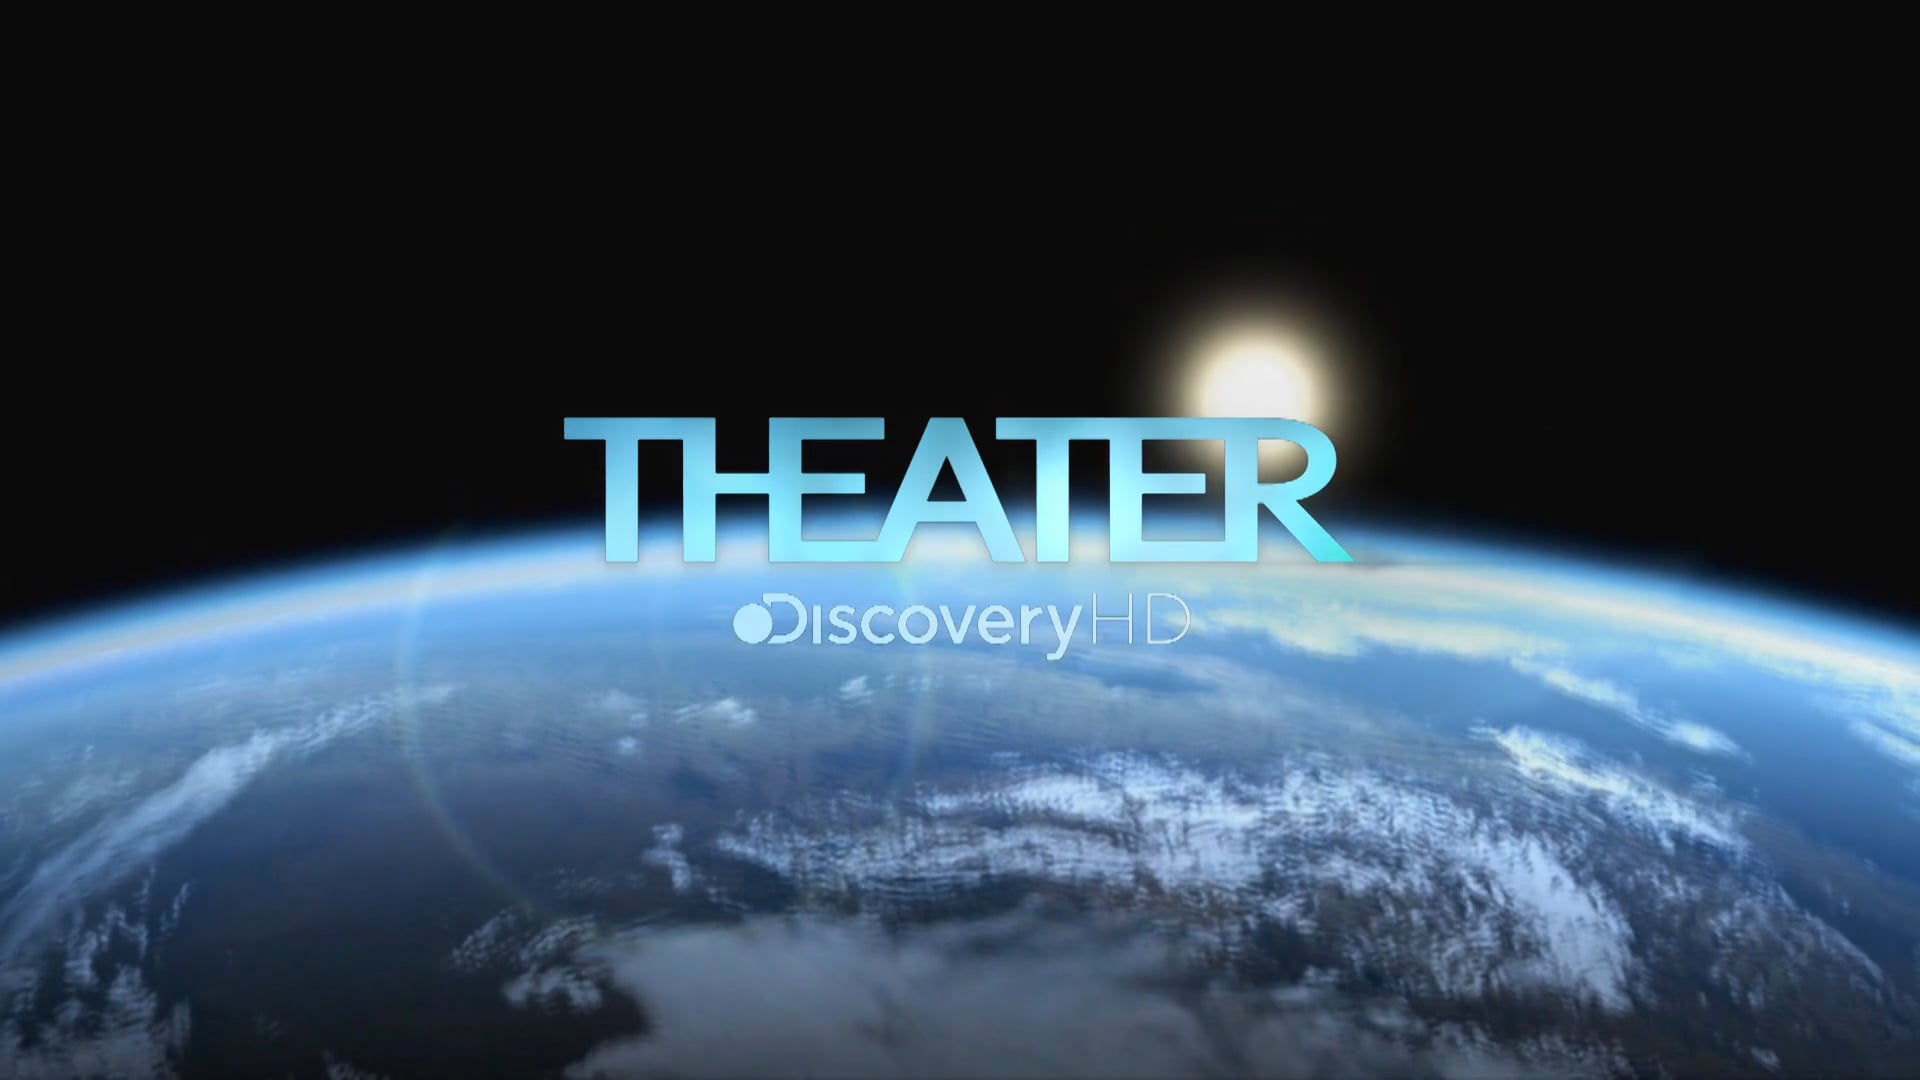 DISCOVERY THEATER HD – FILLER